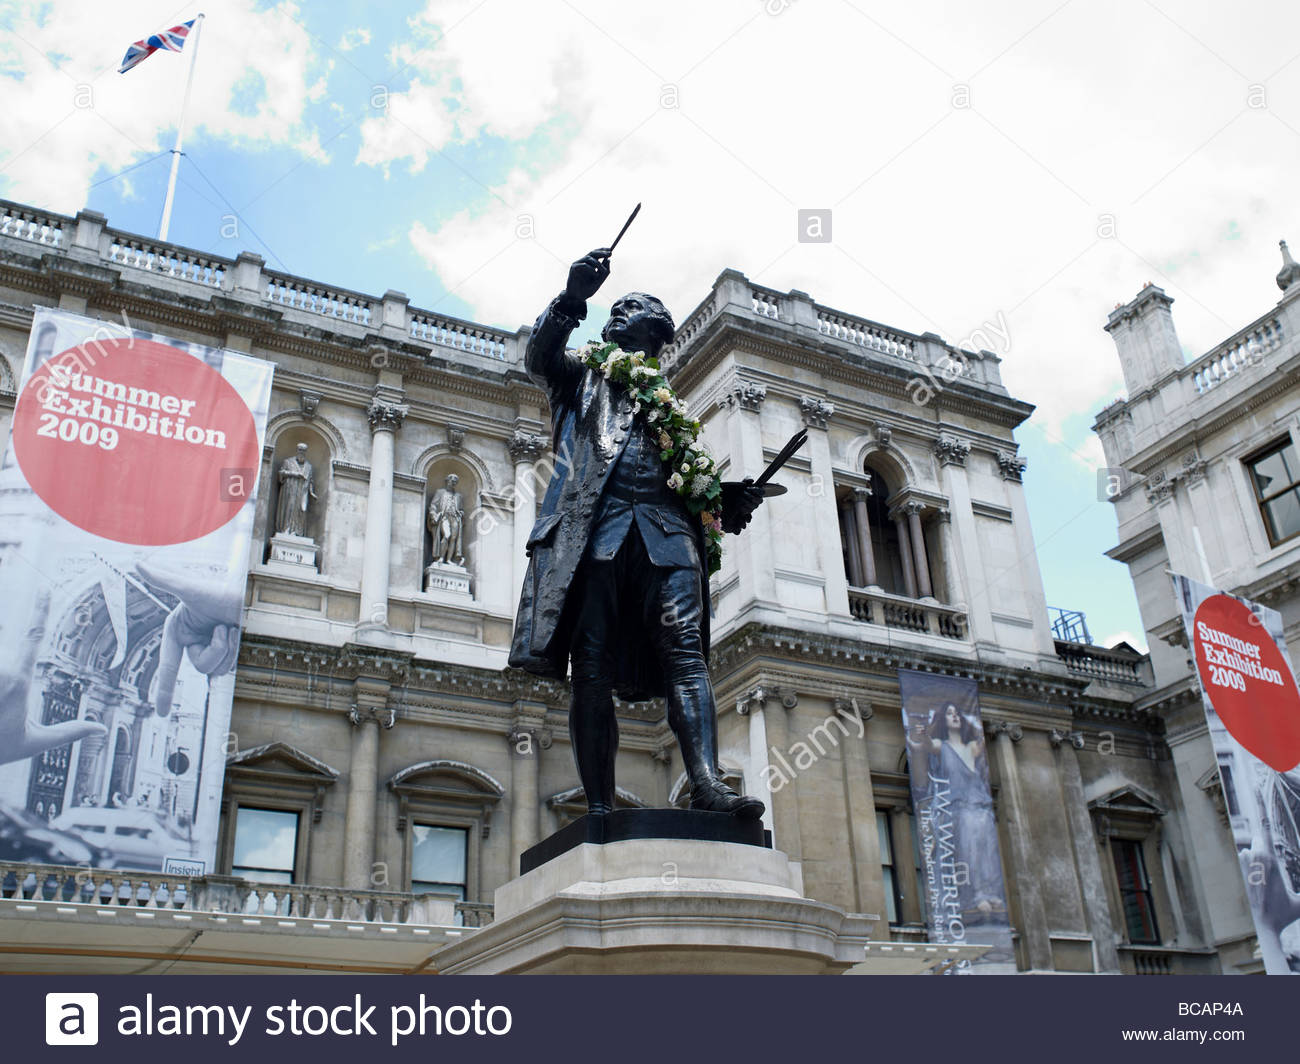 Royal Academy of Arts in London entrance and archway., Burlington House in Picadailly,London Stock Photo